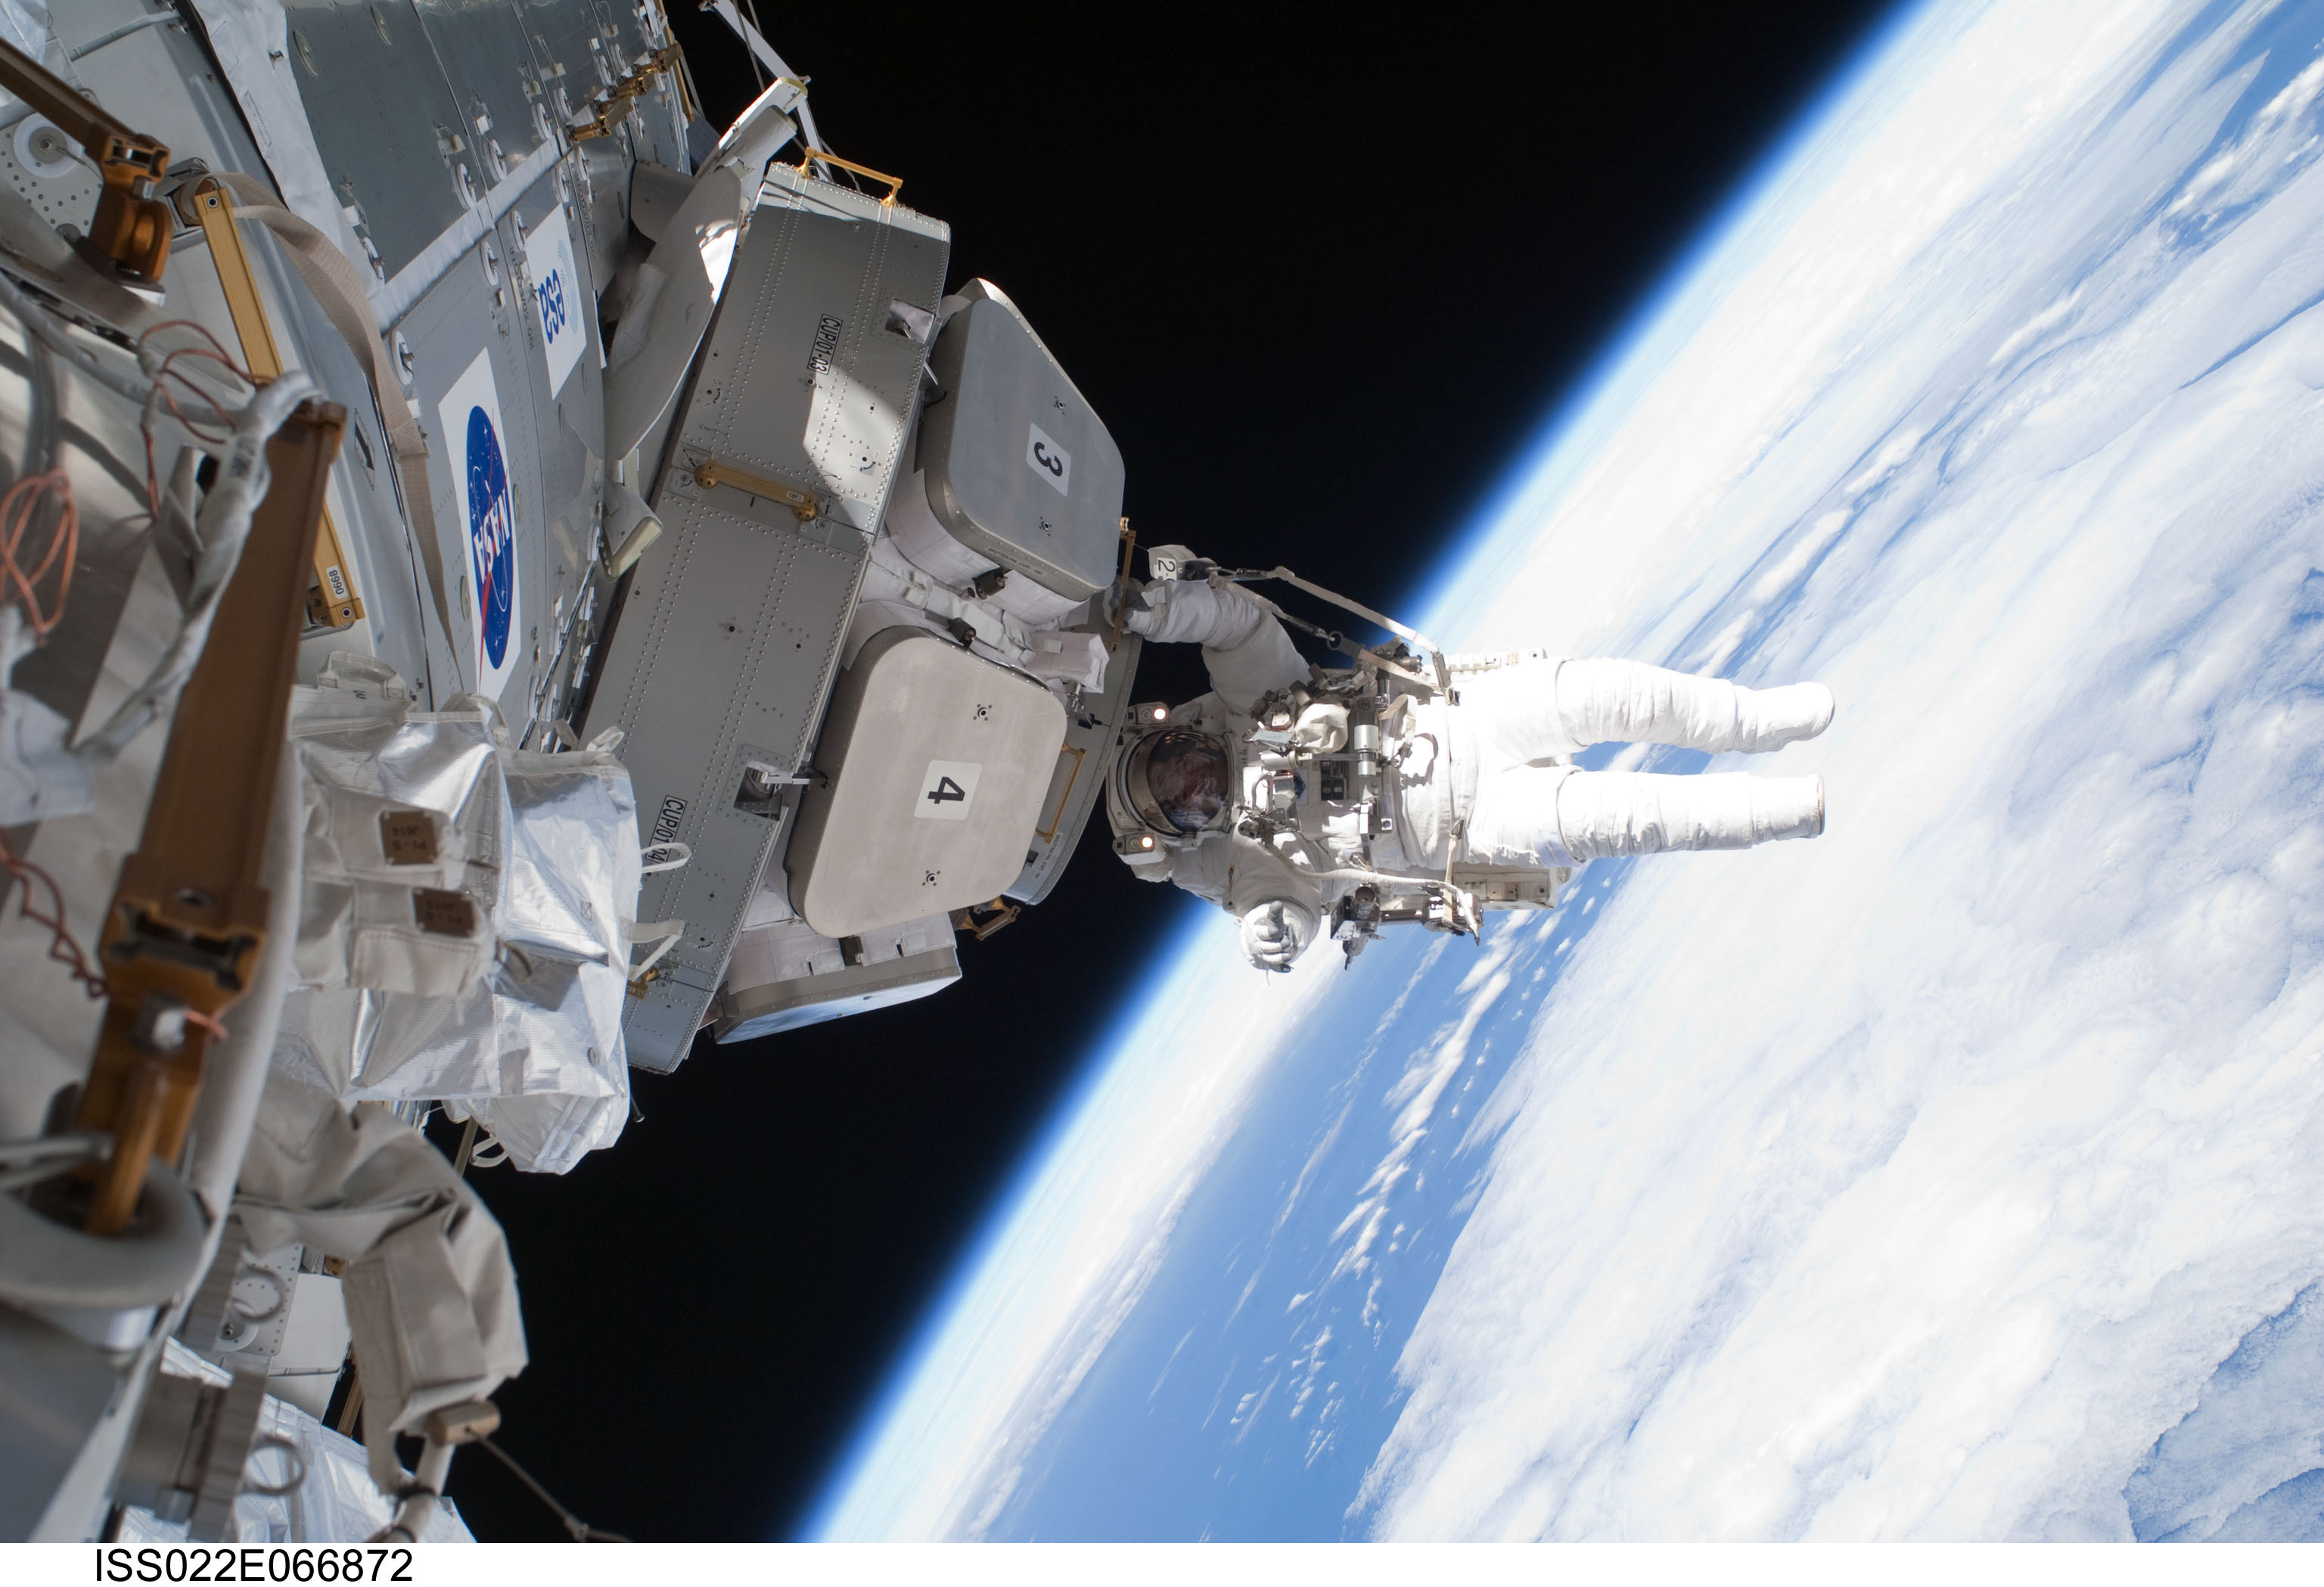 Photo of NASA Astronaut Nicholas Patrick Installing the Panoramic.